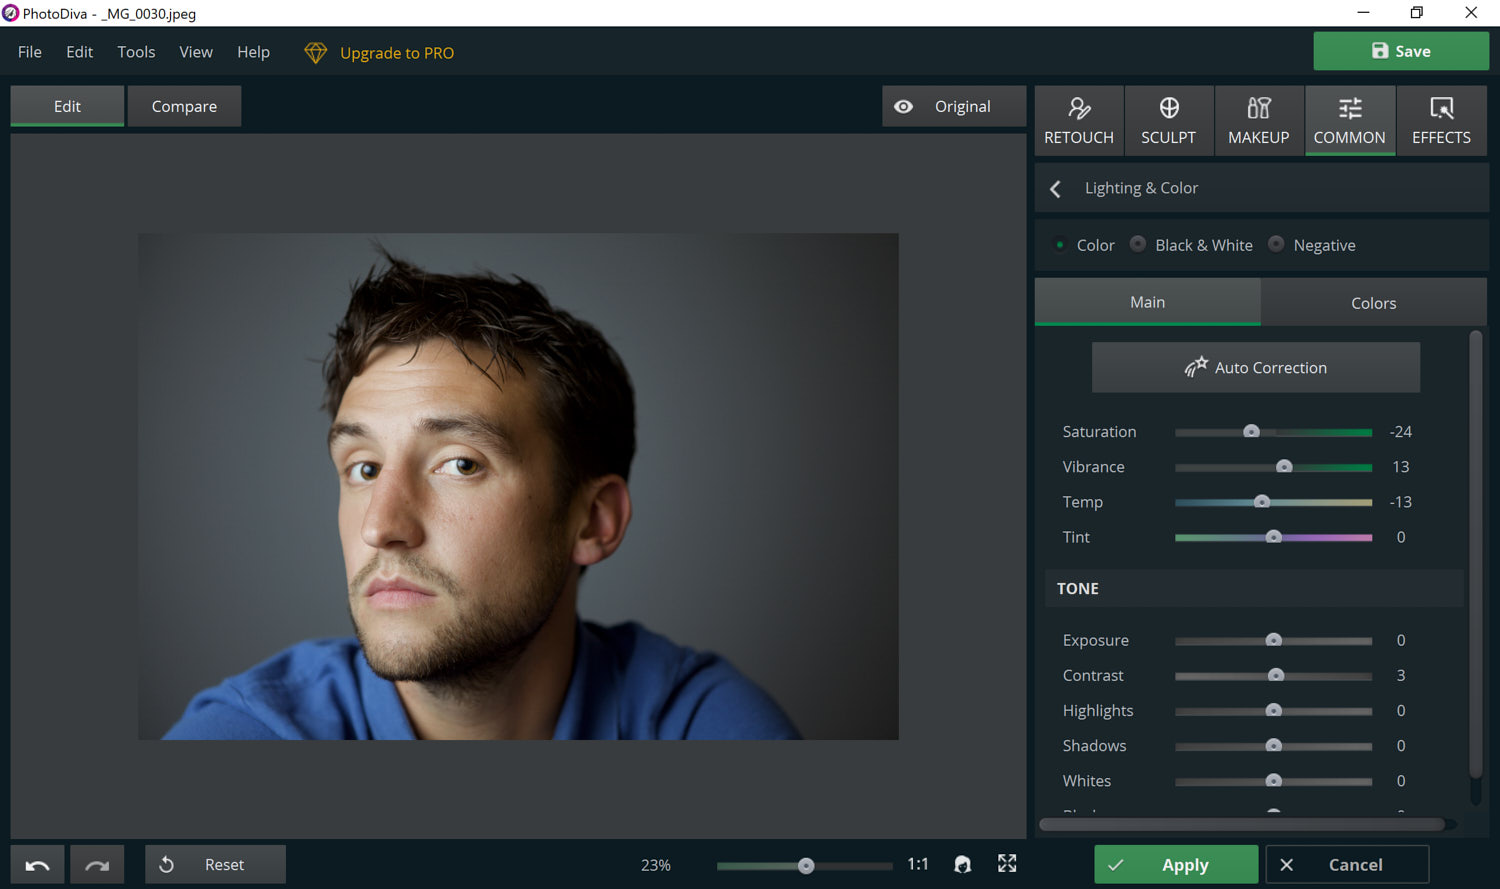 screenshot of editing features in PhotoDiva